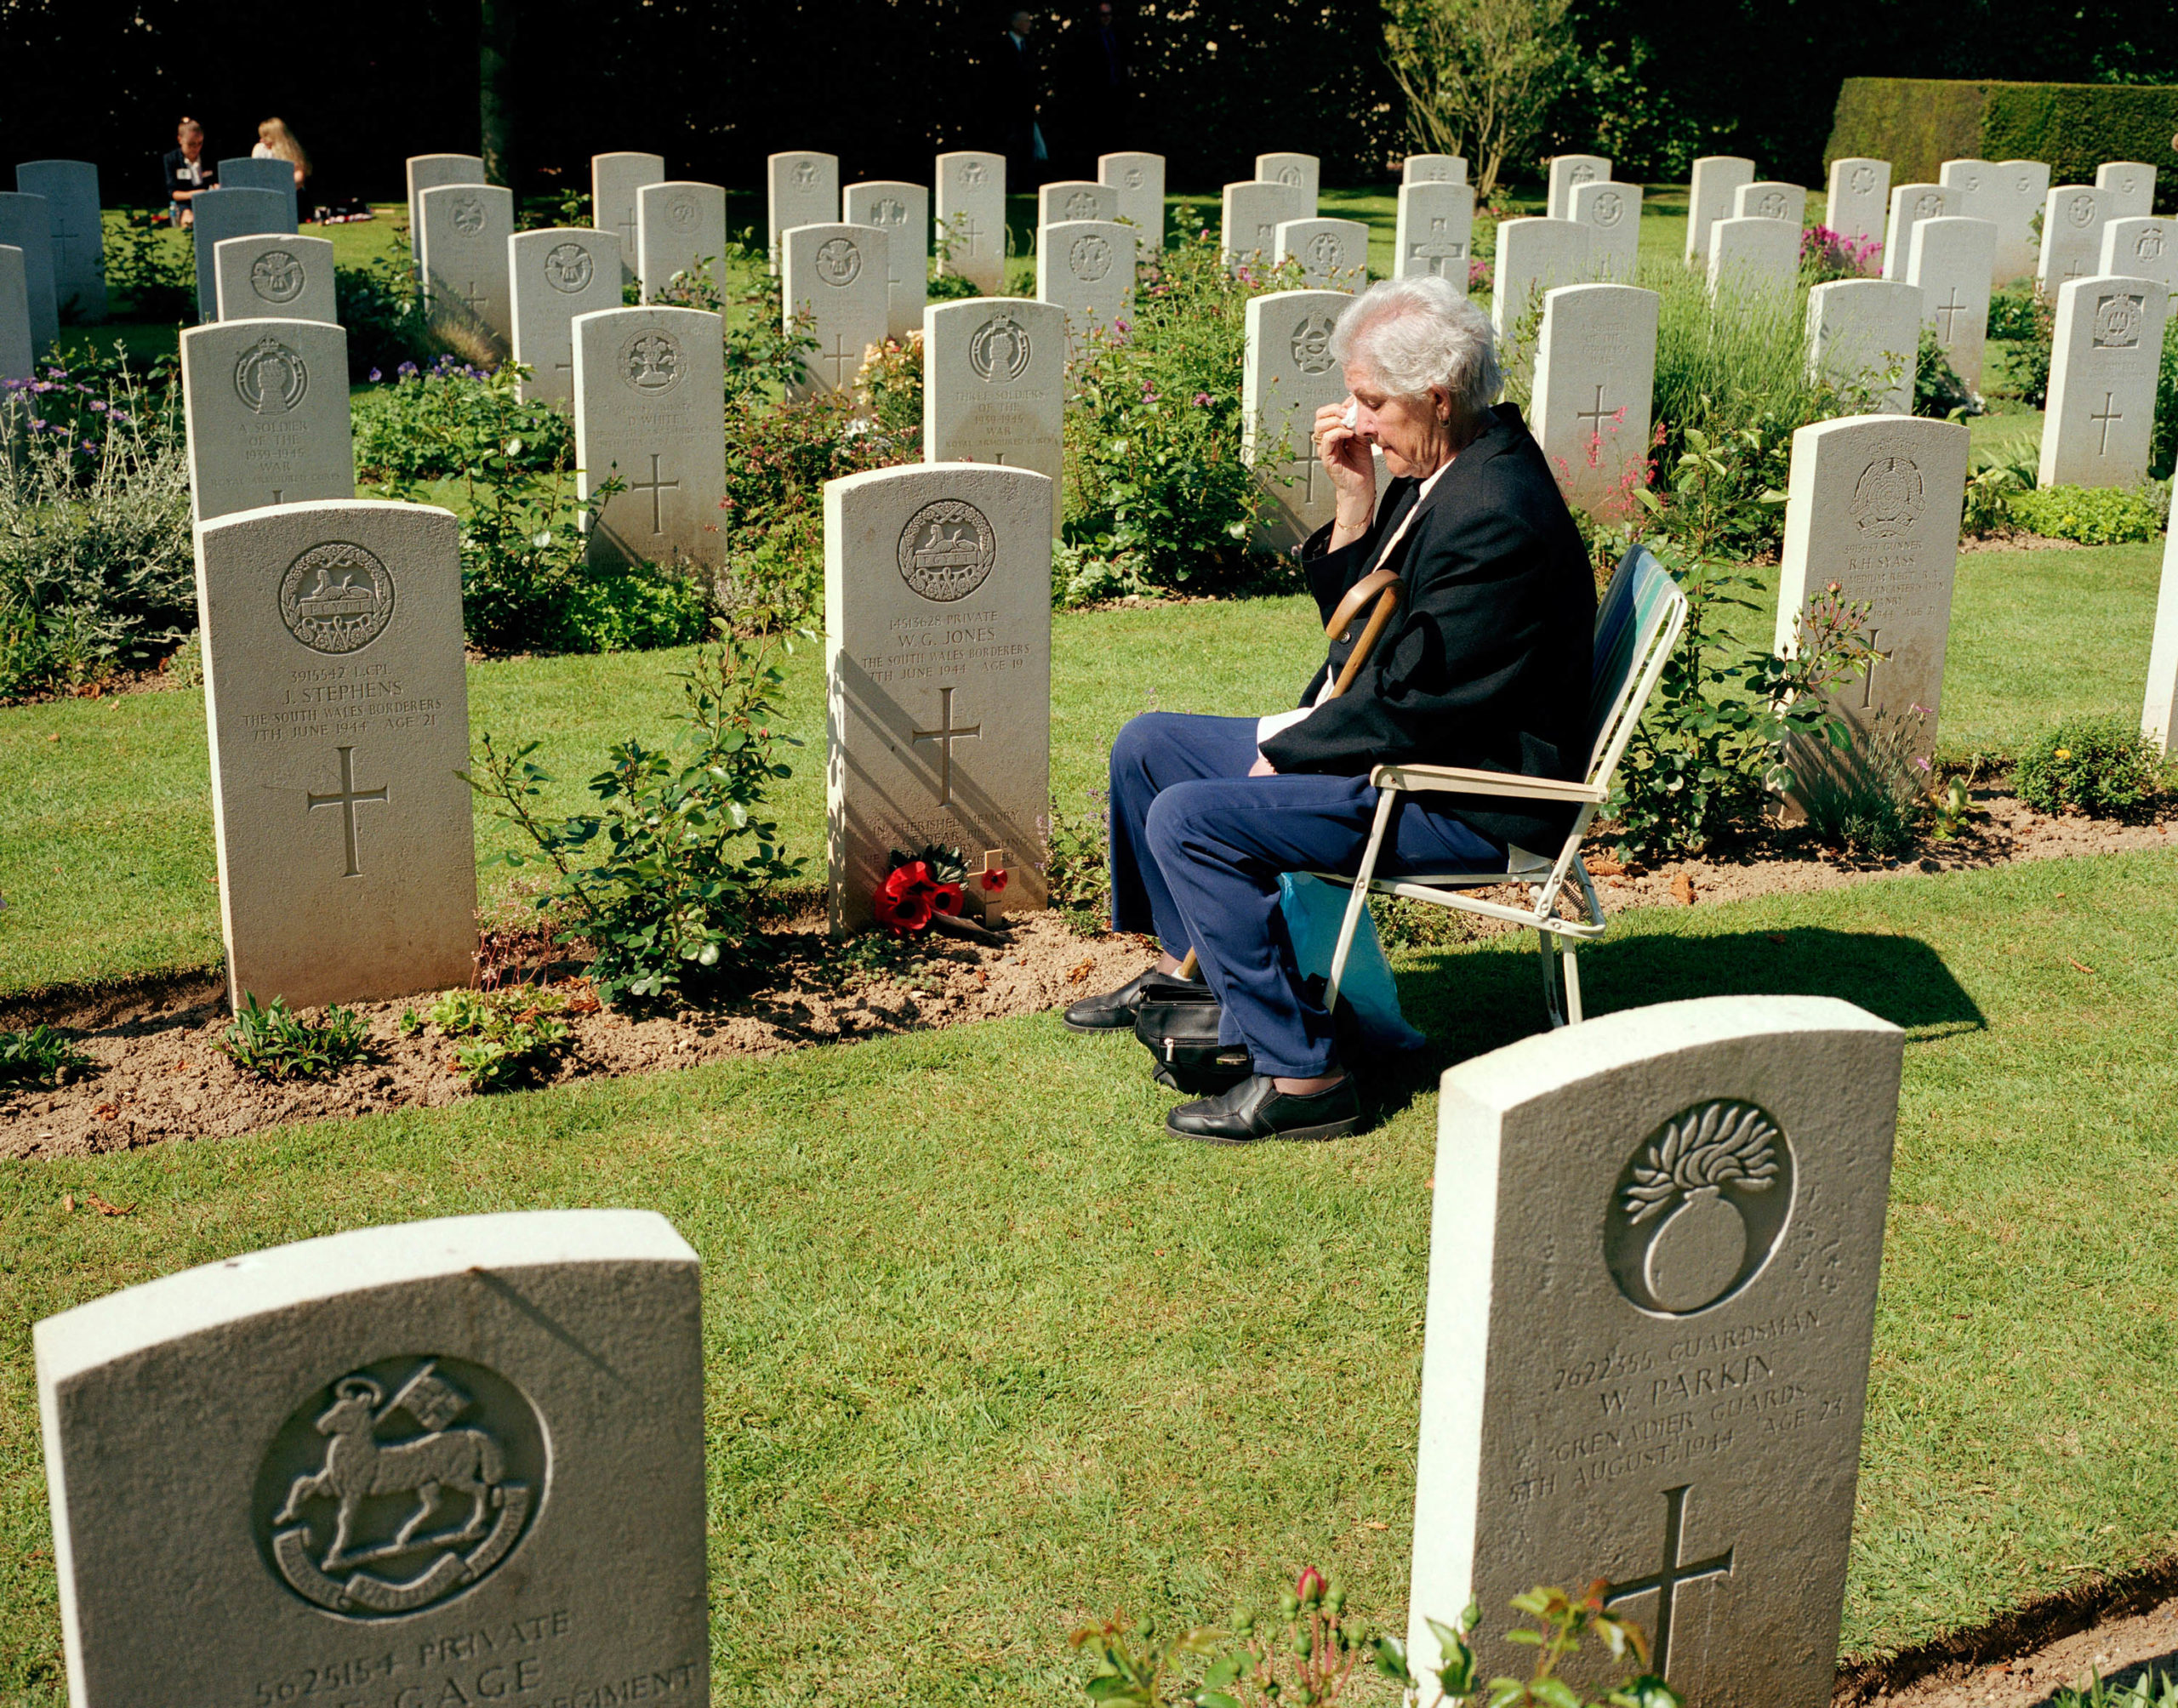 Normandy, Bayeux. D-Day celebrations. At the British war cemetery, a British woman mourns at the grave of her brother, who was killed on 7 June 1944.